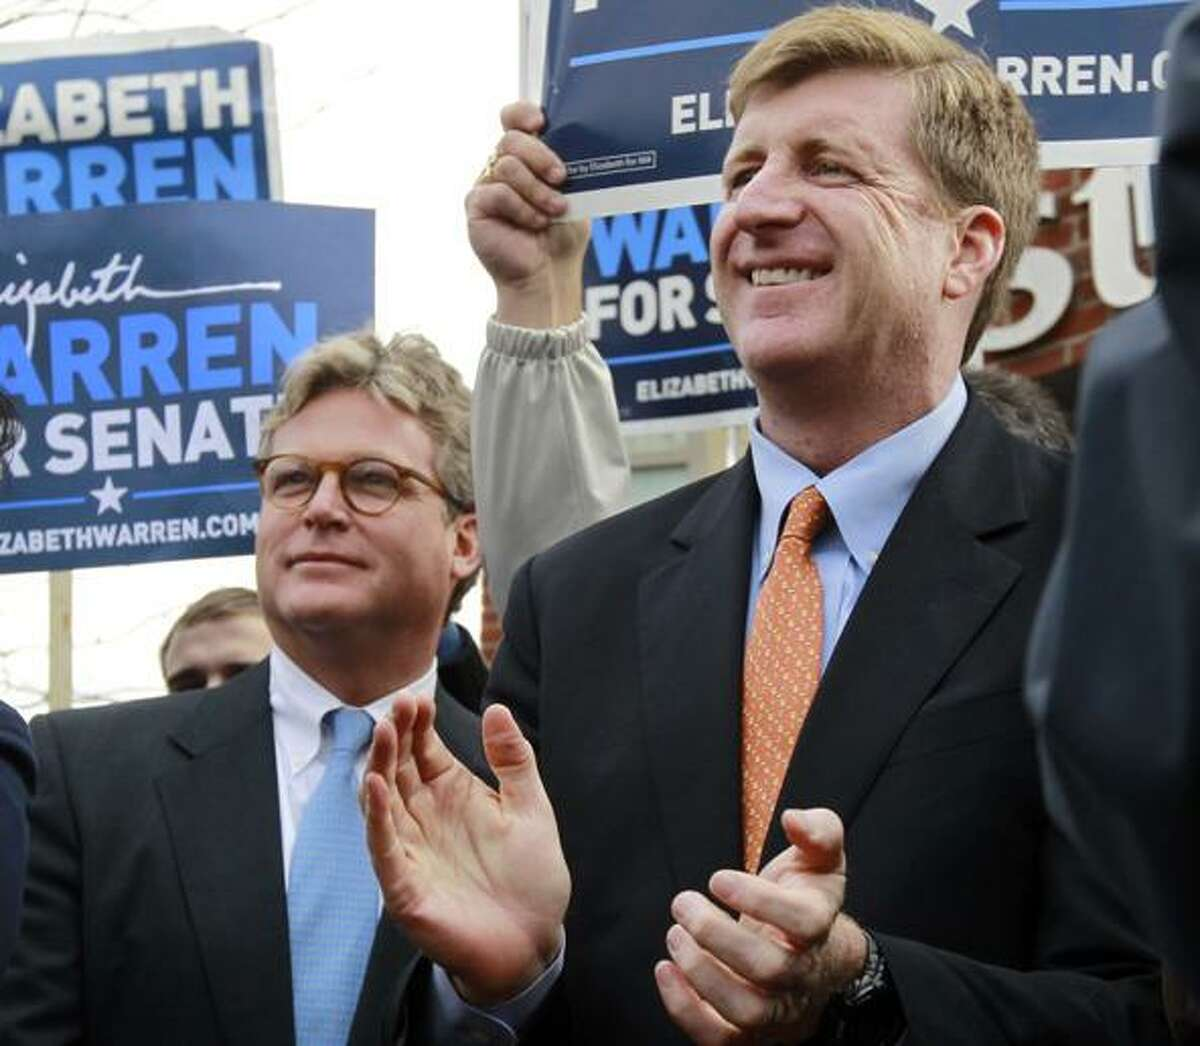 Edward M. Kennedy, Jr., left, and former U.S. Rep. Patrick Kennedy, D-R.I., right, both sons of the late U.S. Sen. Edward M. Kennedy, D-Mass., attend a campaign event for Democratic candidate for the U.S. Senate Elizabeth Warren, not shown, in the Dorchester neighborhood of Boston Monday, Nov. 5, 2012. Both Warren and incumbent U.S. Sen. Scott Brown, R-Mass., continue their push around the state on the final day of campaigning before Election Day. (AP Photo/Steven Senne)